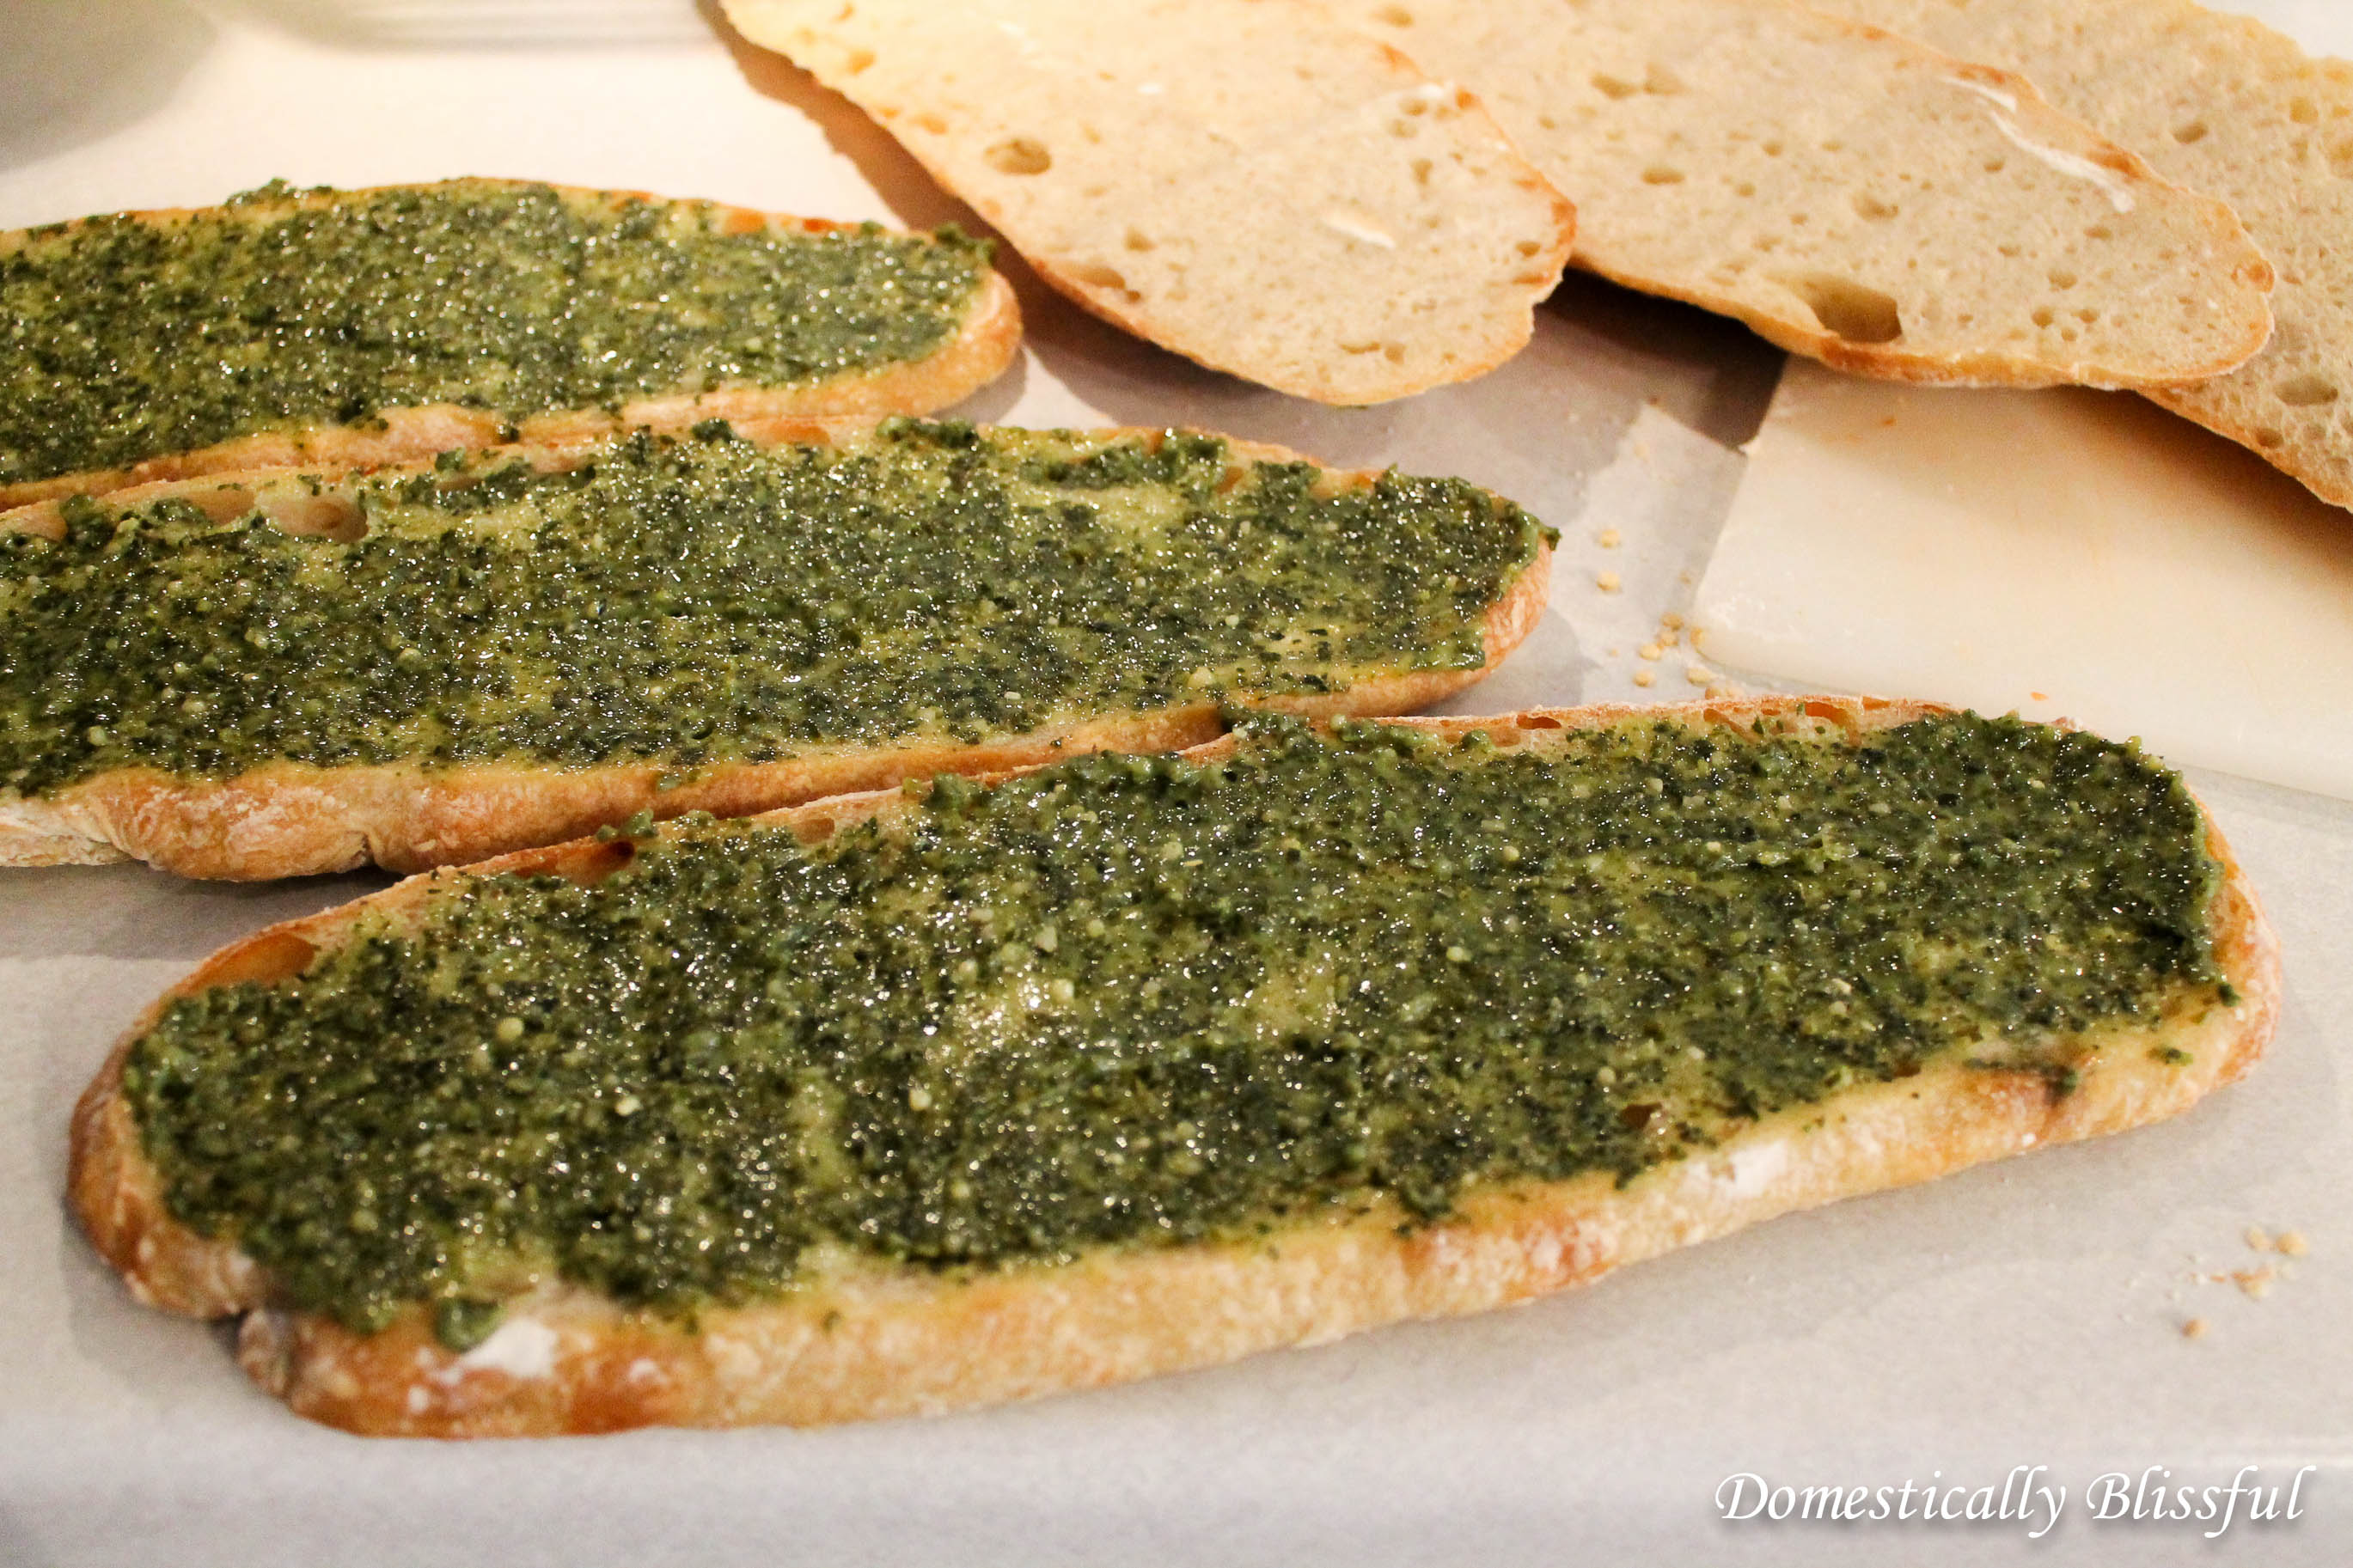 Pesto on Ciabatta Bread